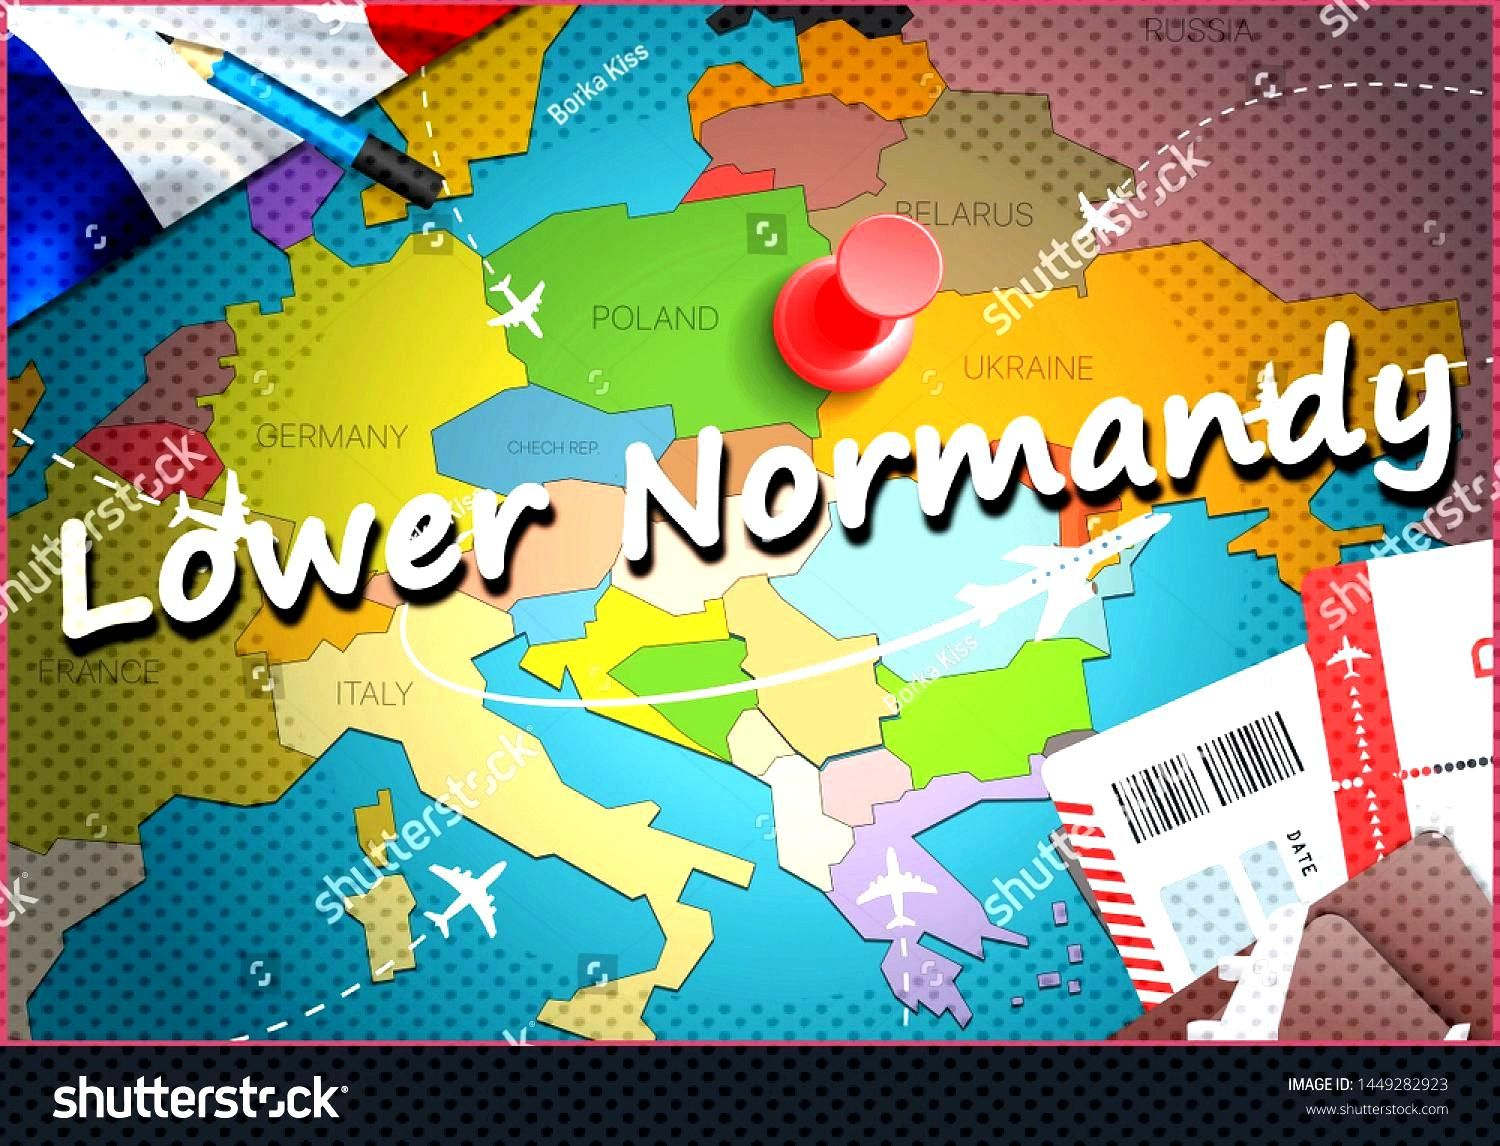 Lower Normandy city travel and tourism destination concept. France flag and Lower Normandy city on